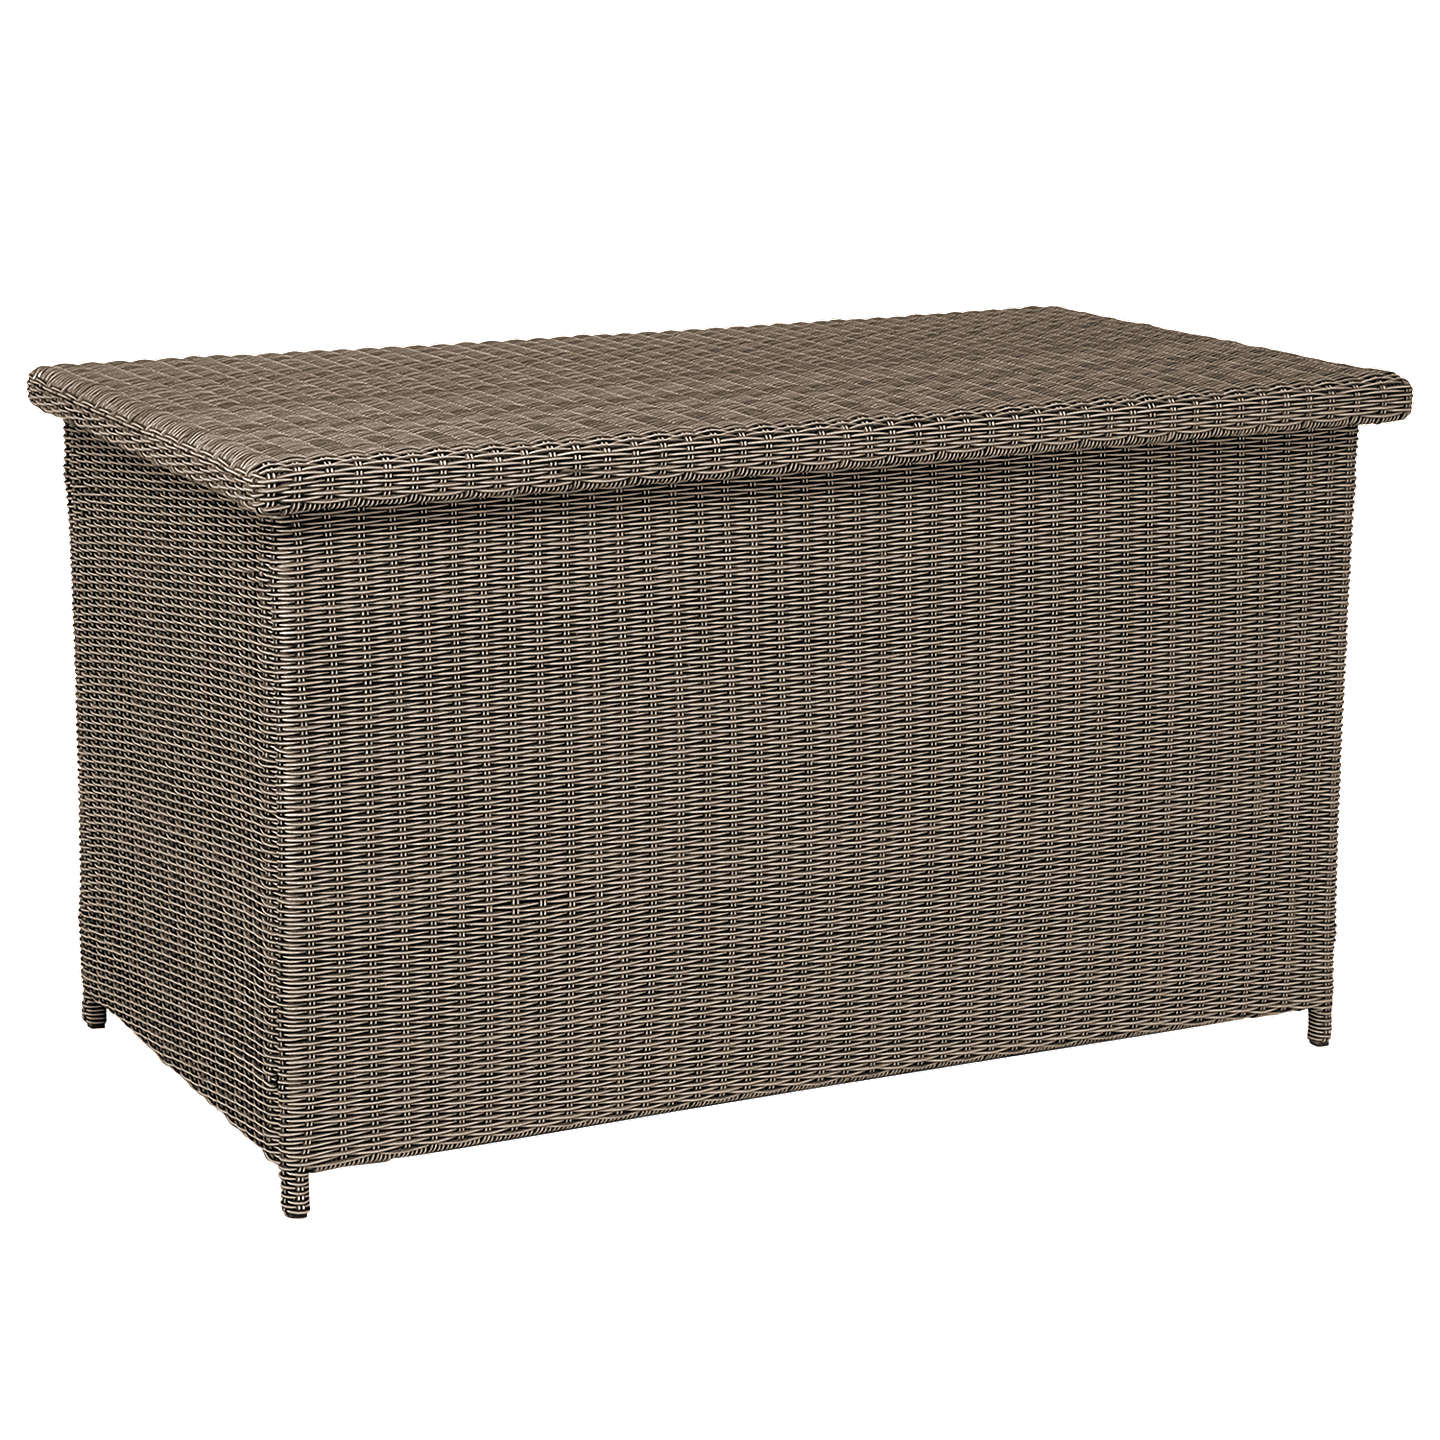 Kettler Palma Outdoor Cushion Storage Box Rattan Online At Johnlewis